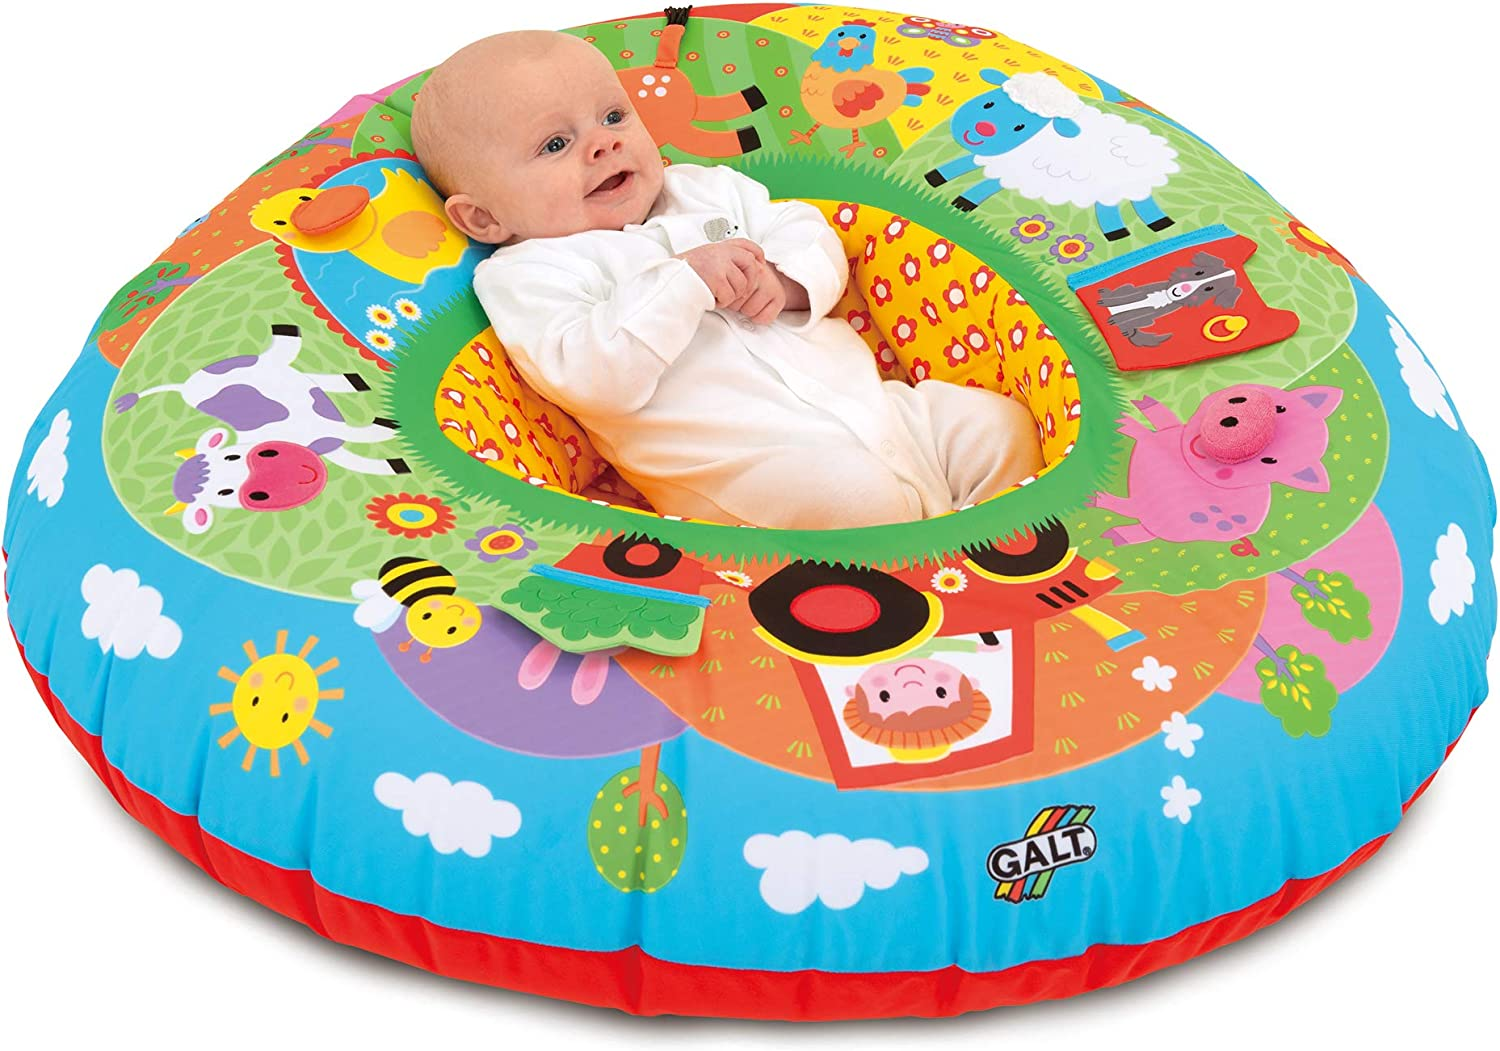 Sit-Me-Up Cushion Baby Support Ring Comfy Safe Soft Secure Unusual Gift